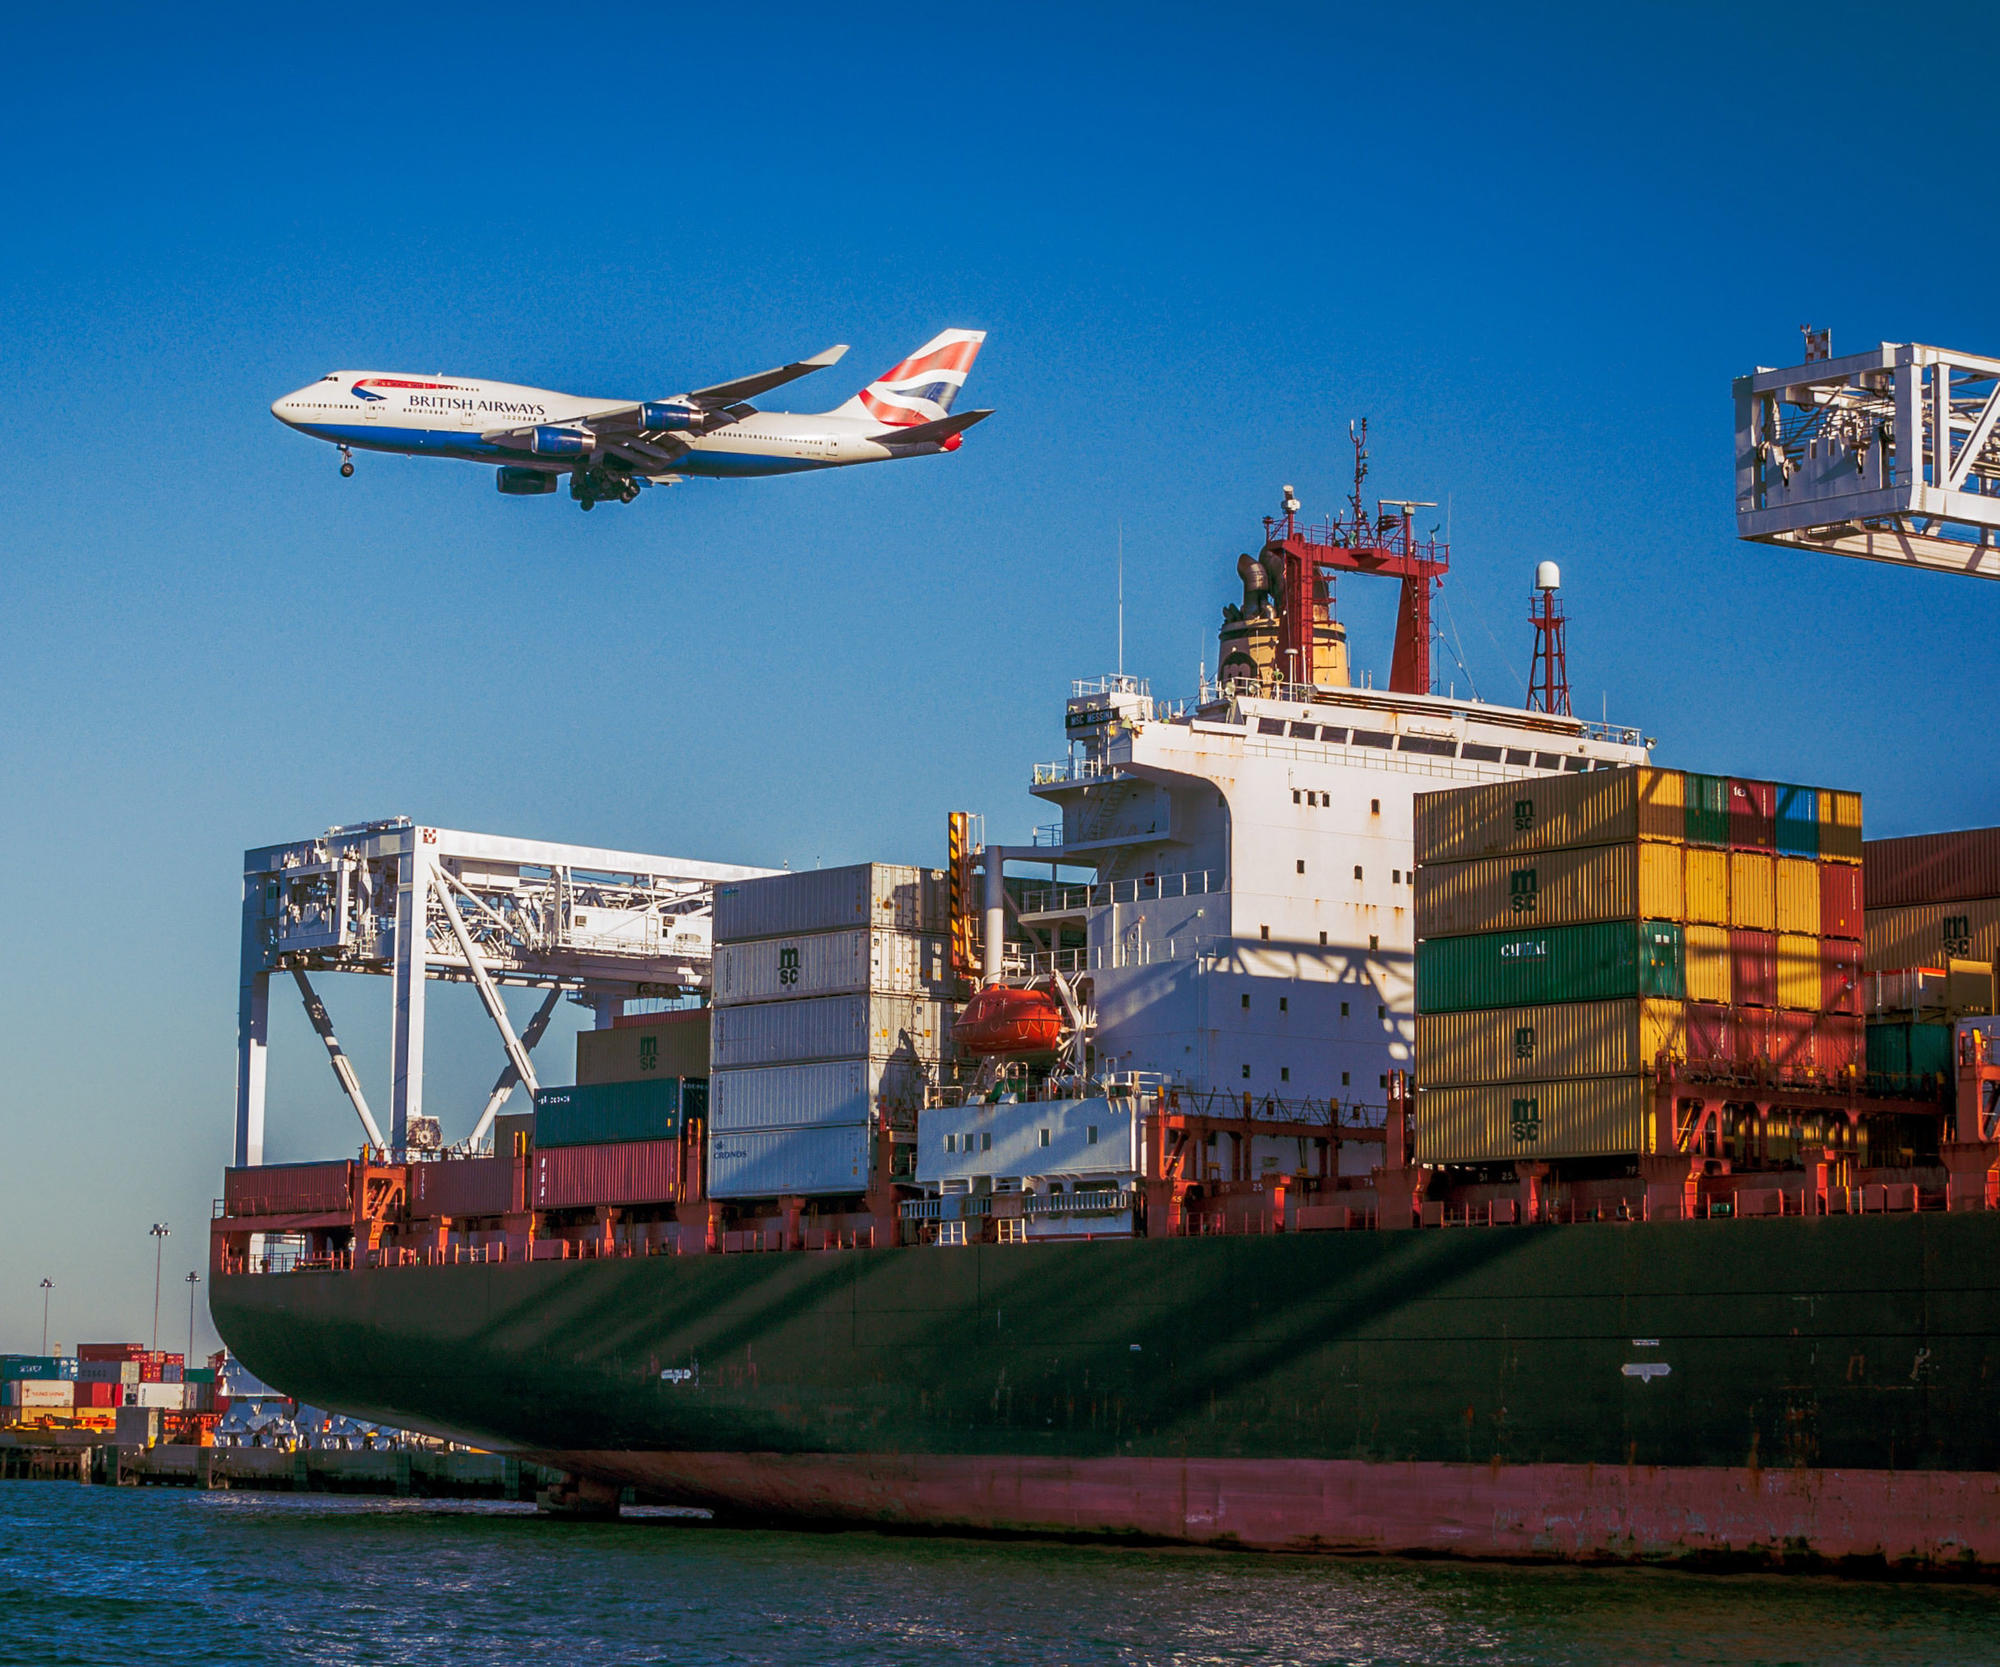 plane above shipping boat with crates